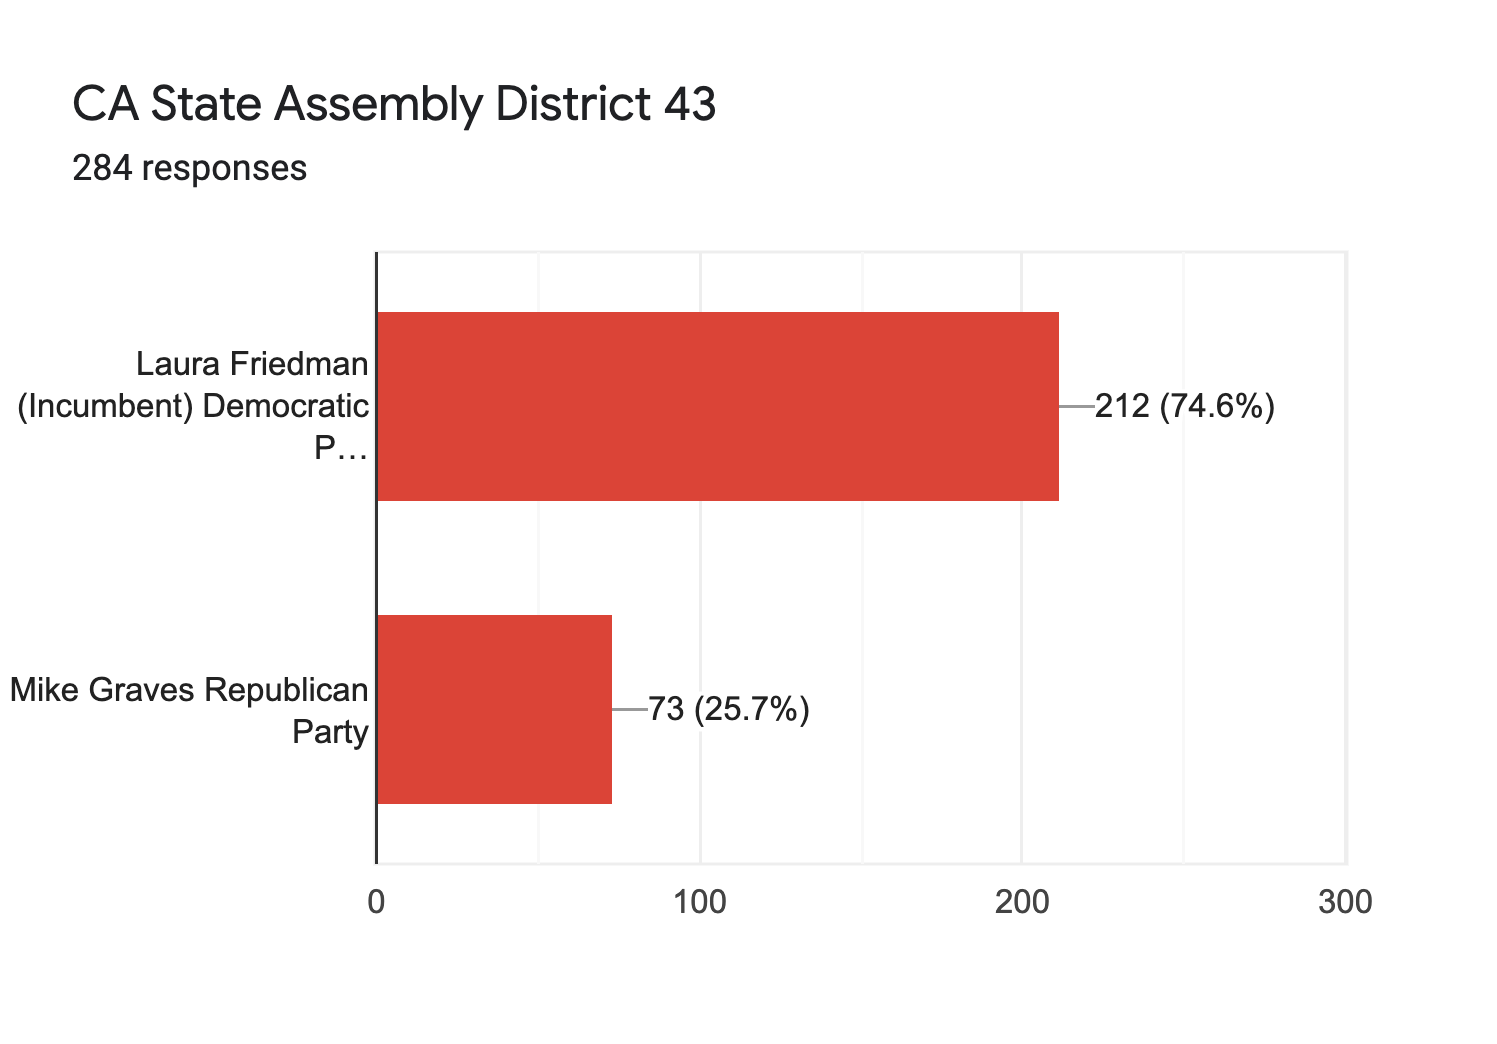 Forms response chart. Question title: CA State Assembly District 43. Number of responses: 284 responses.